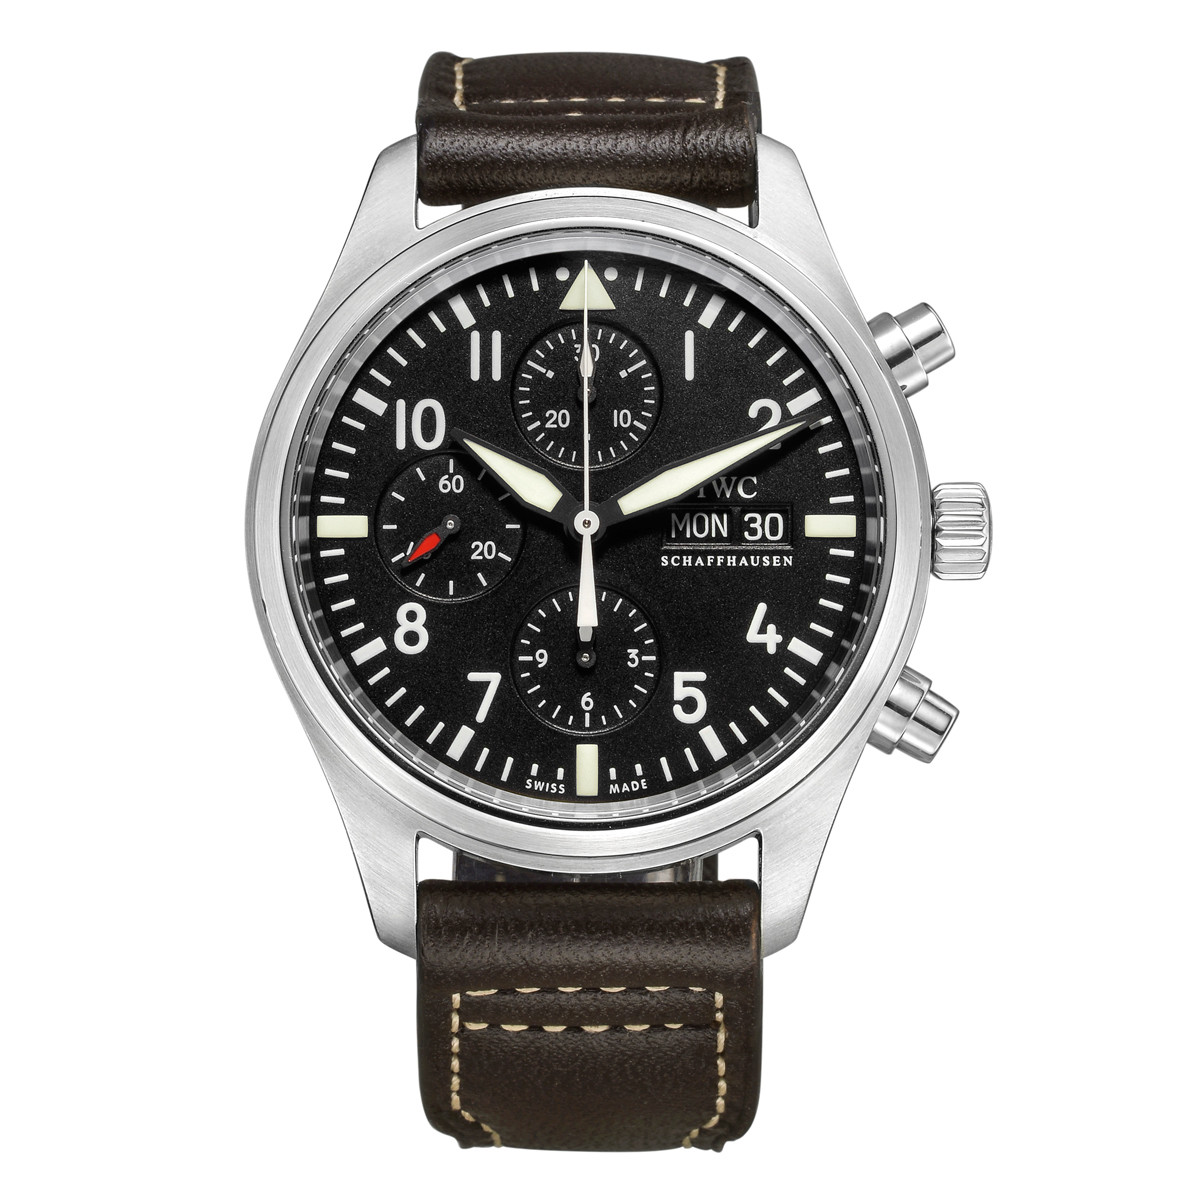 Pilot's Watch Chronograph Steel (IW371701)